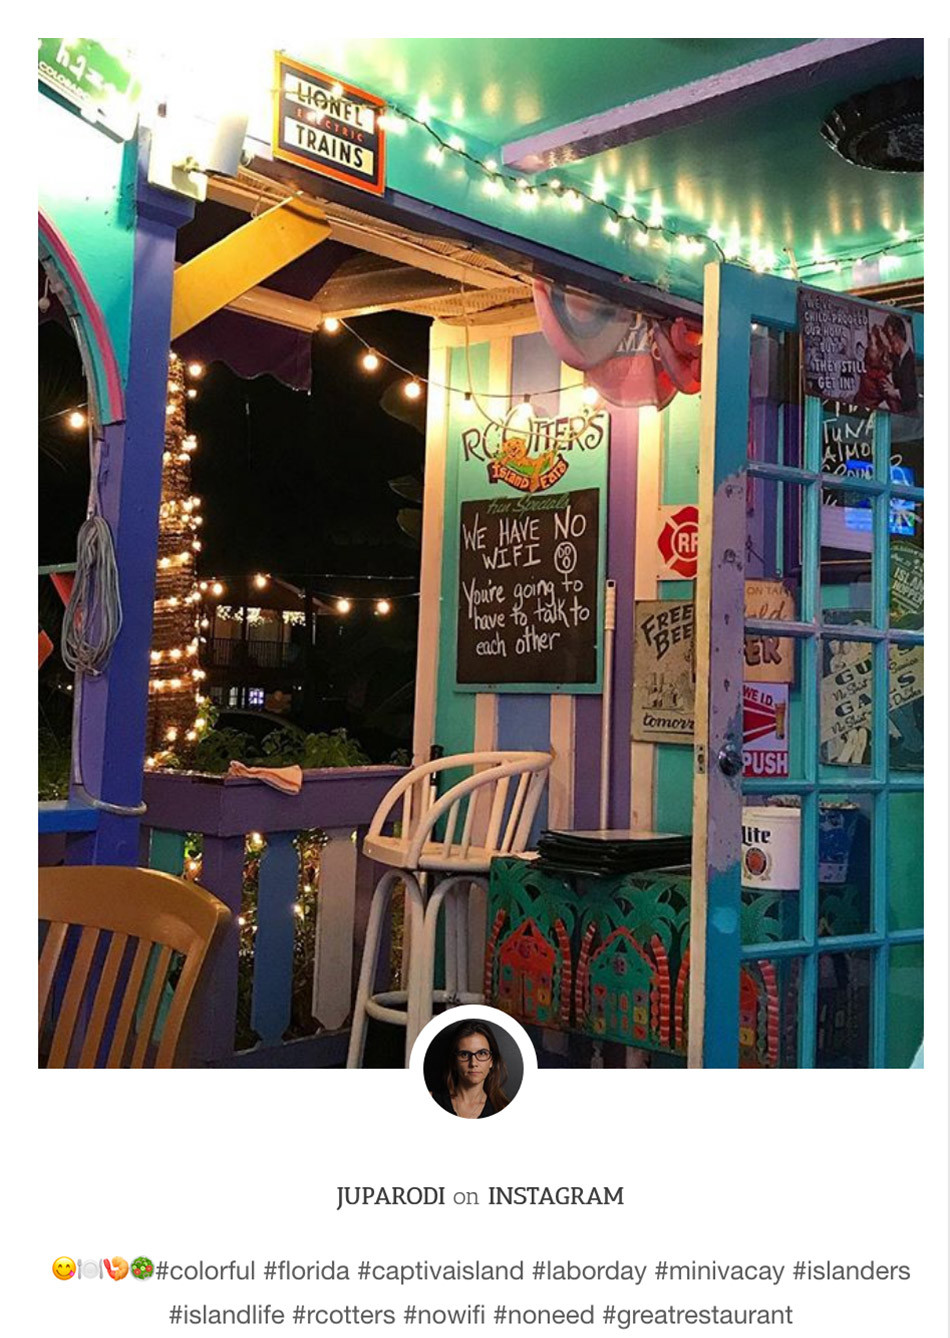 Captiva Island Restaurant-RC-Otters-restaurant-no-wifi